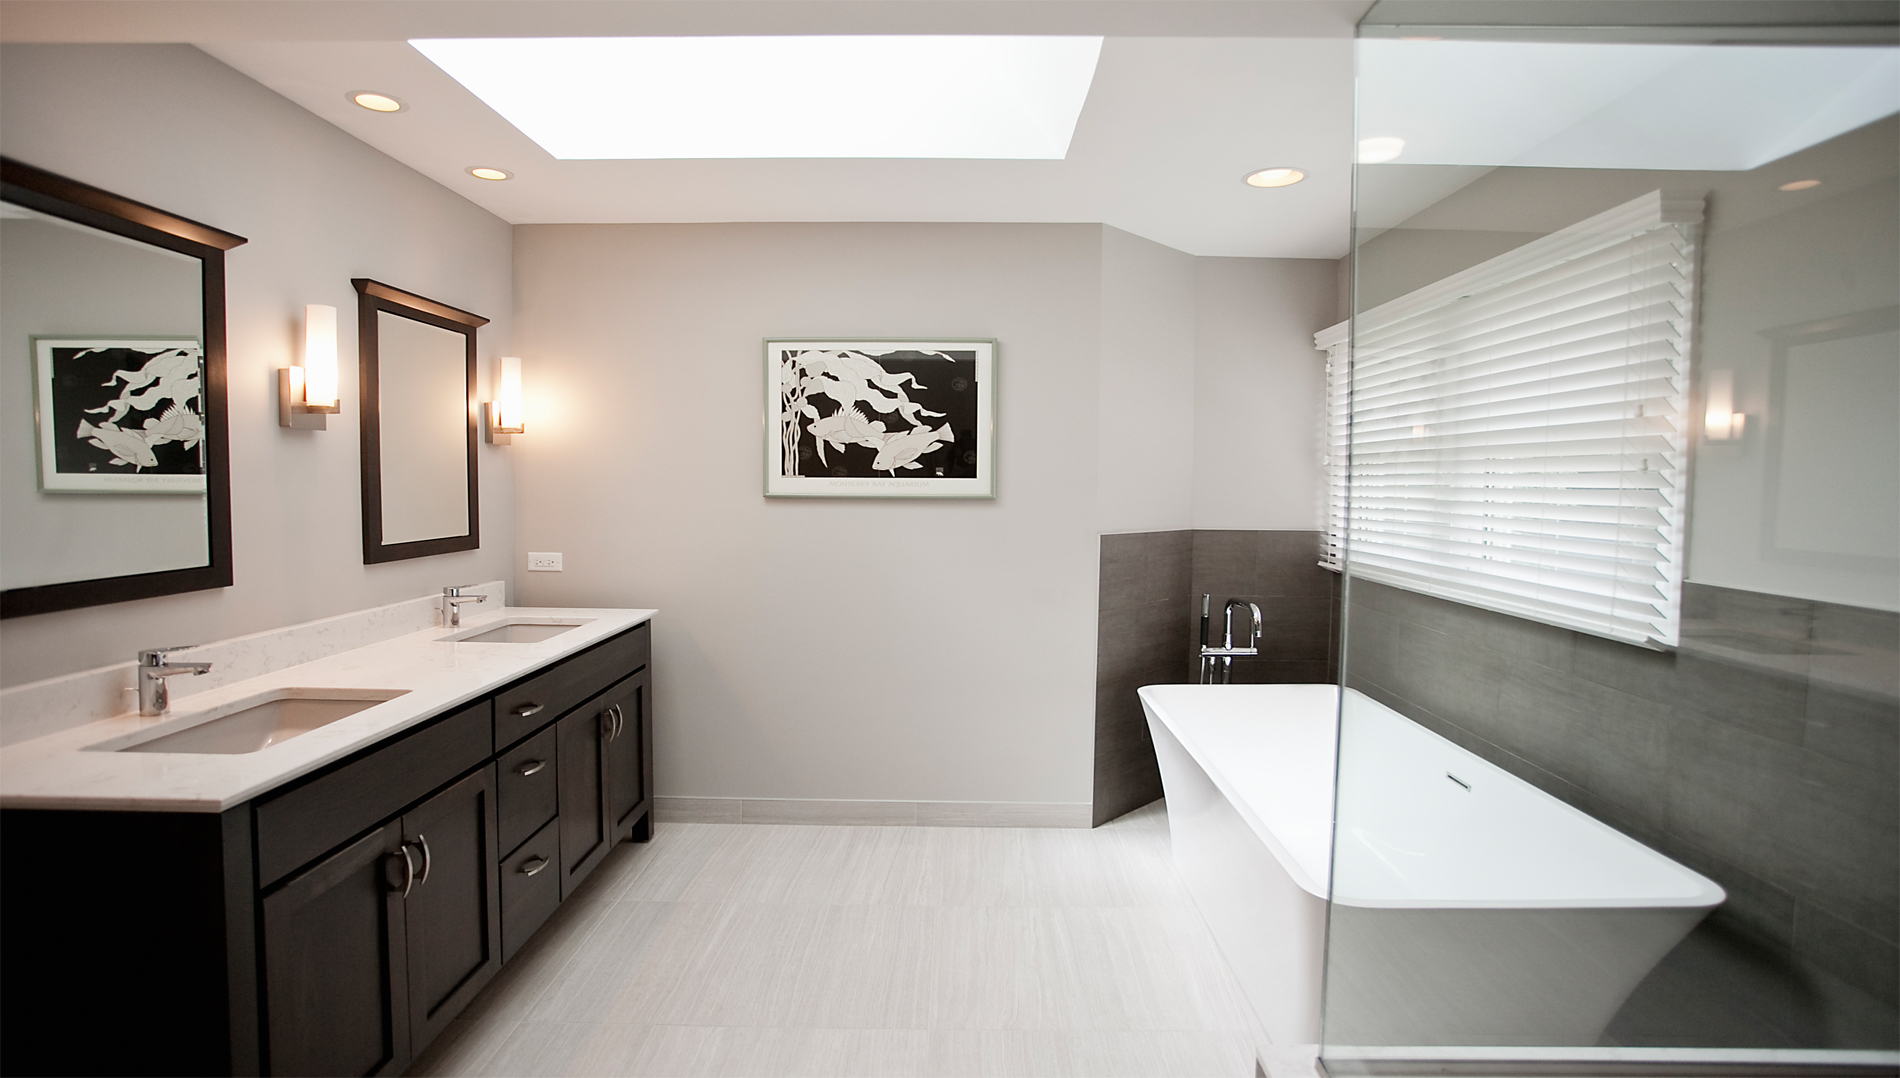 Custom Bathroom Vanities Naperville bathroom remodeling gallery naperville, aurora, wheaton - part 2